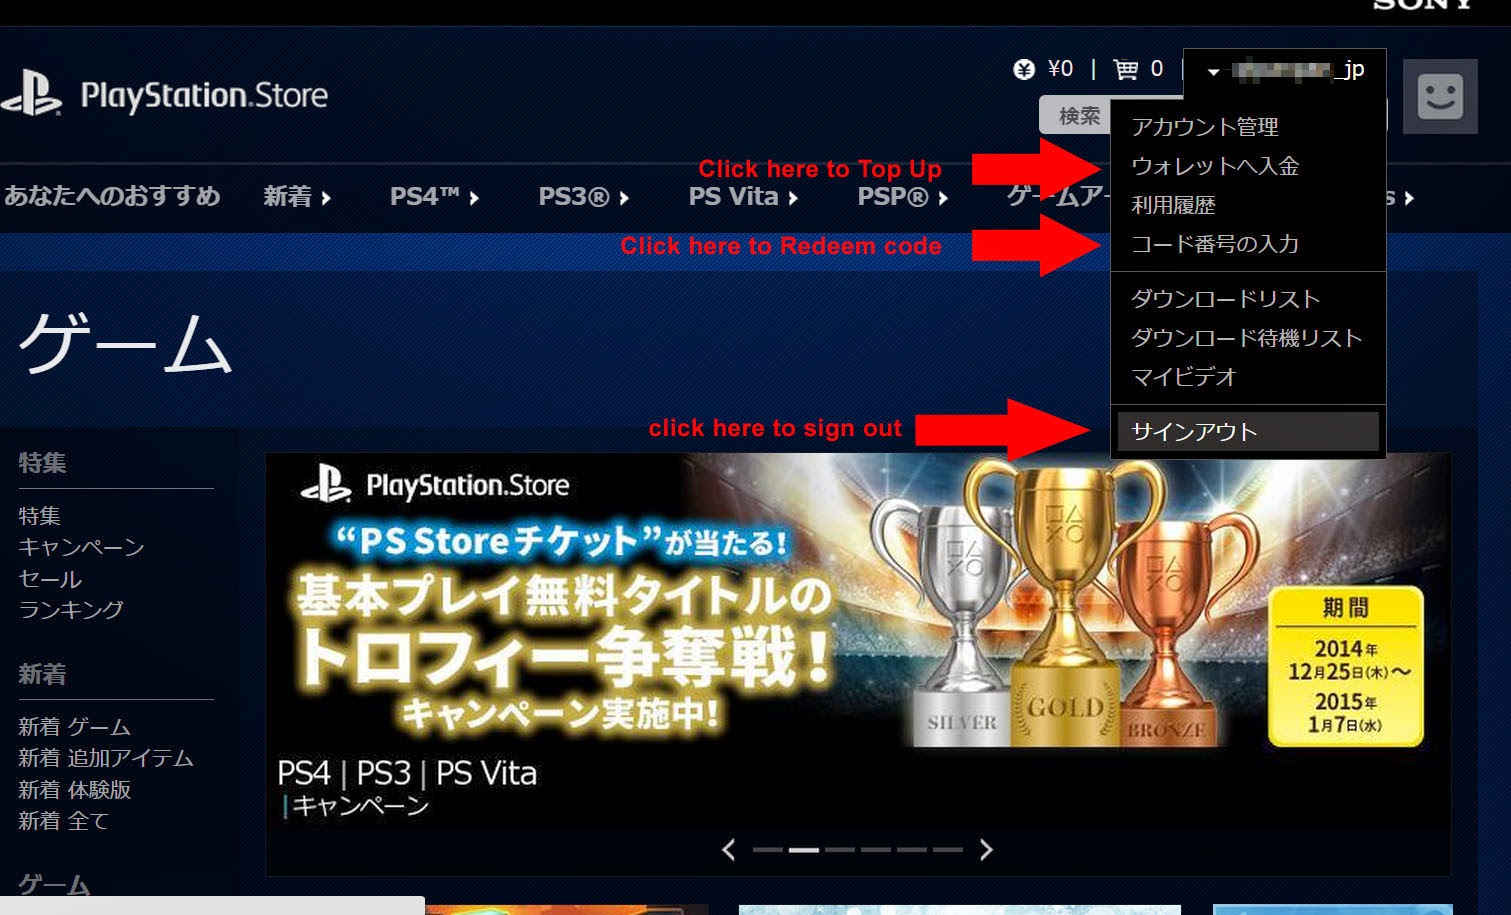 Psn World Deals Guide How To Purchase Games From Jp Psn Store On